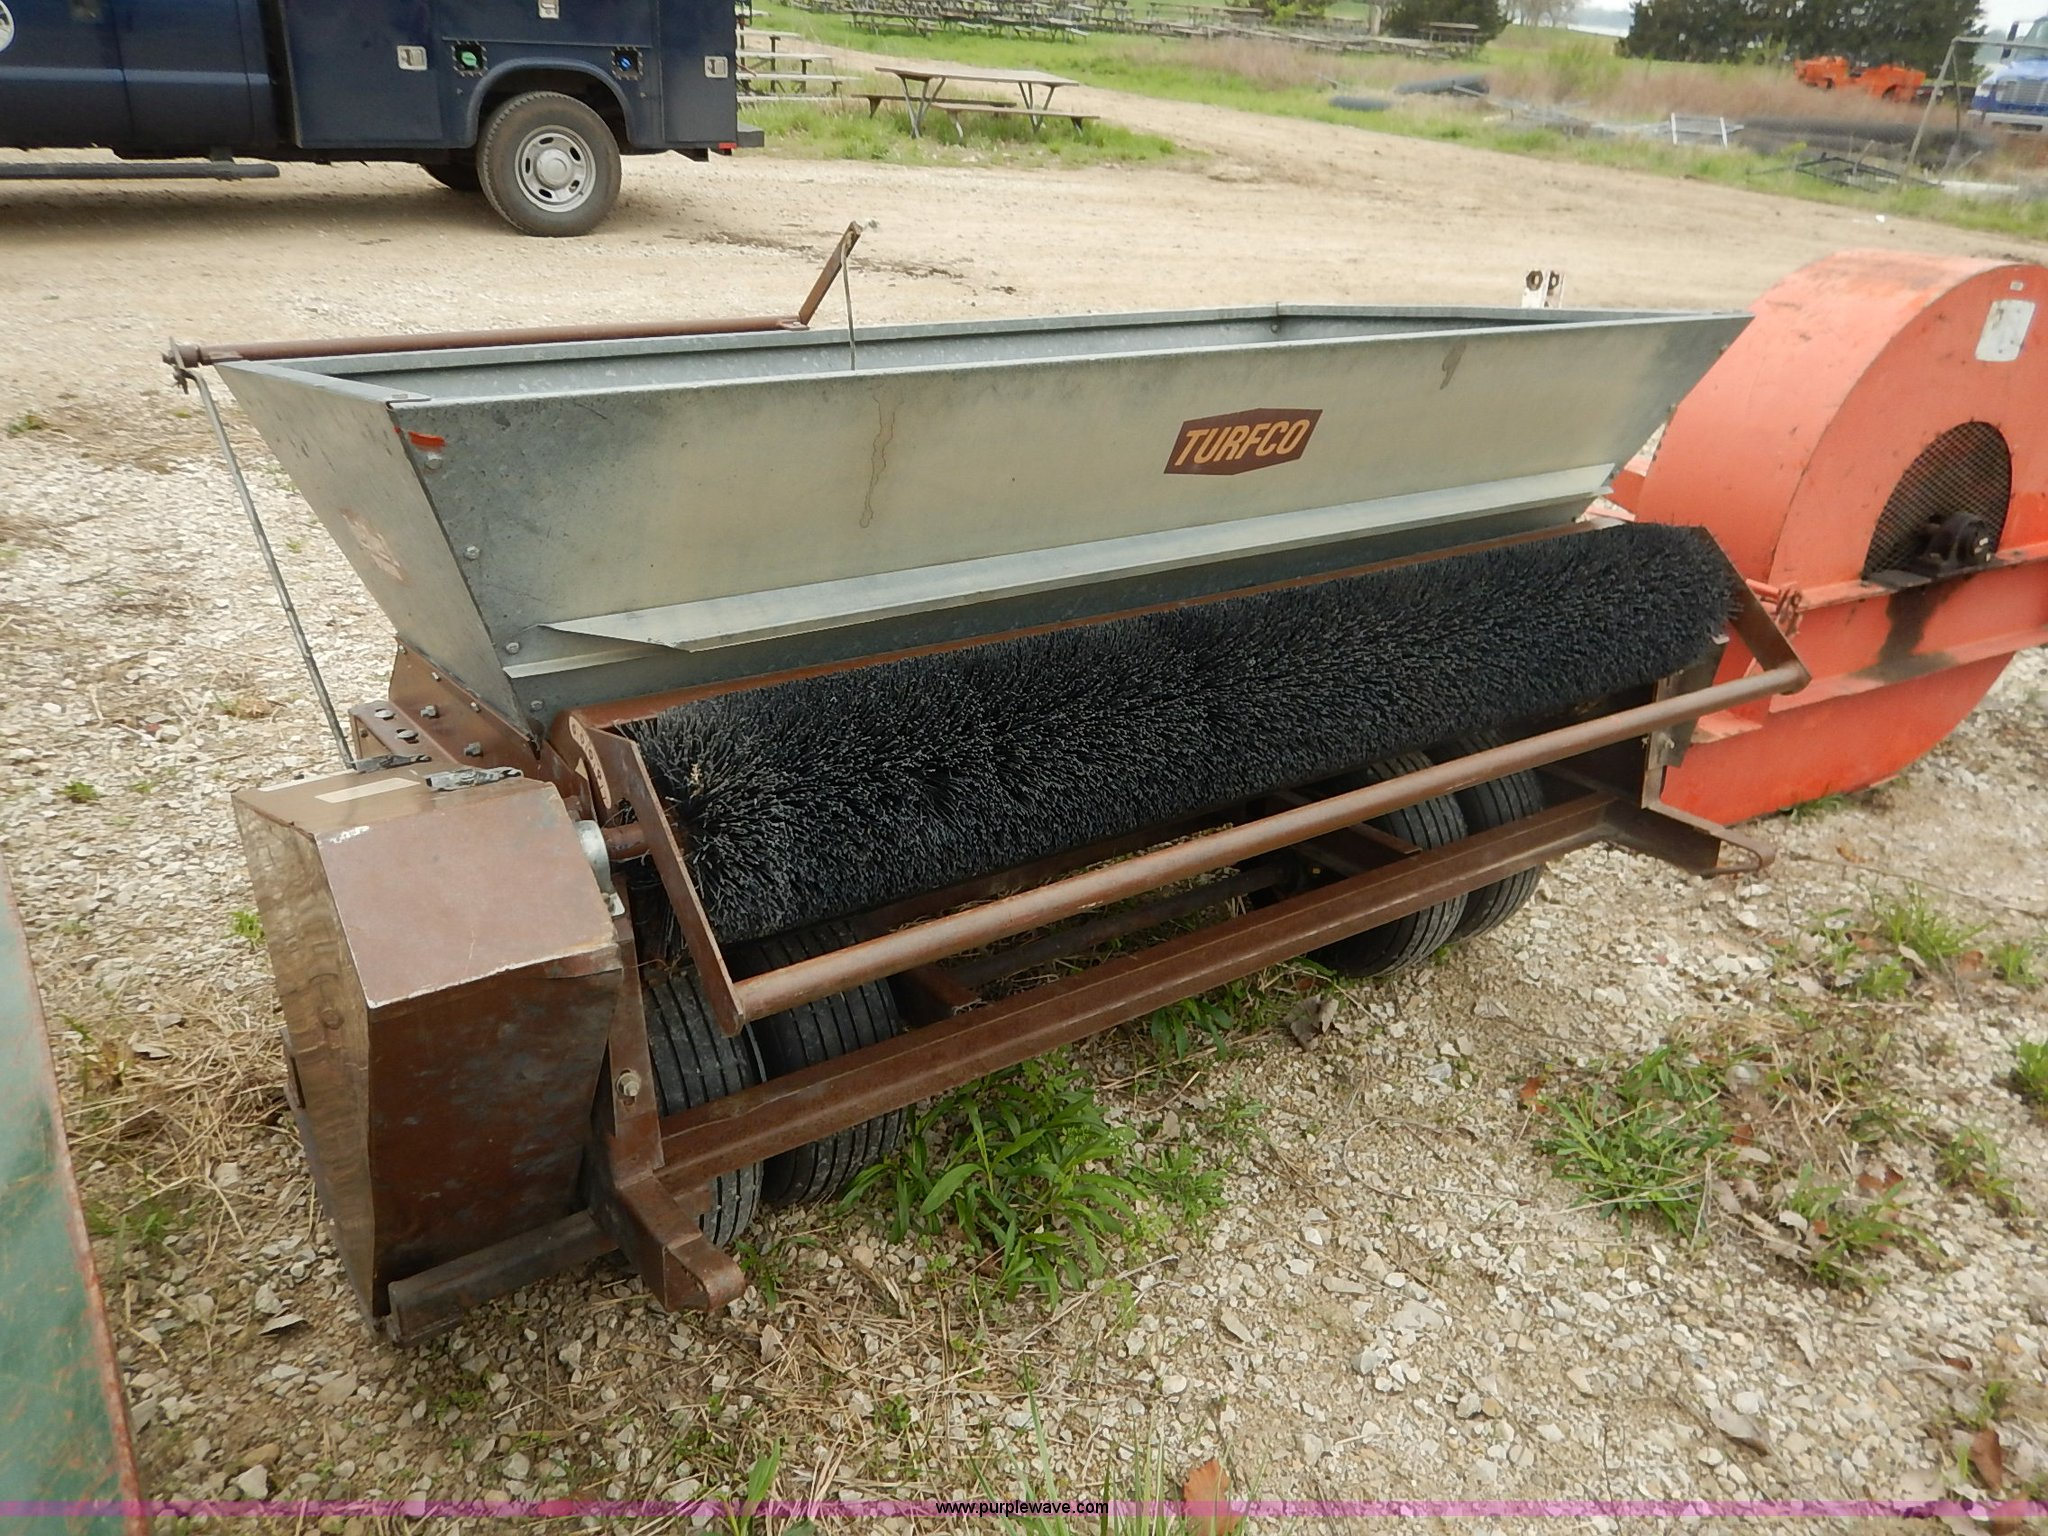 self dresser turfco spin wide top contained